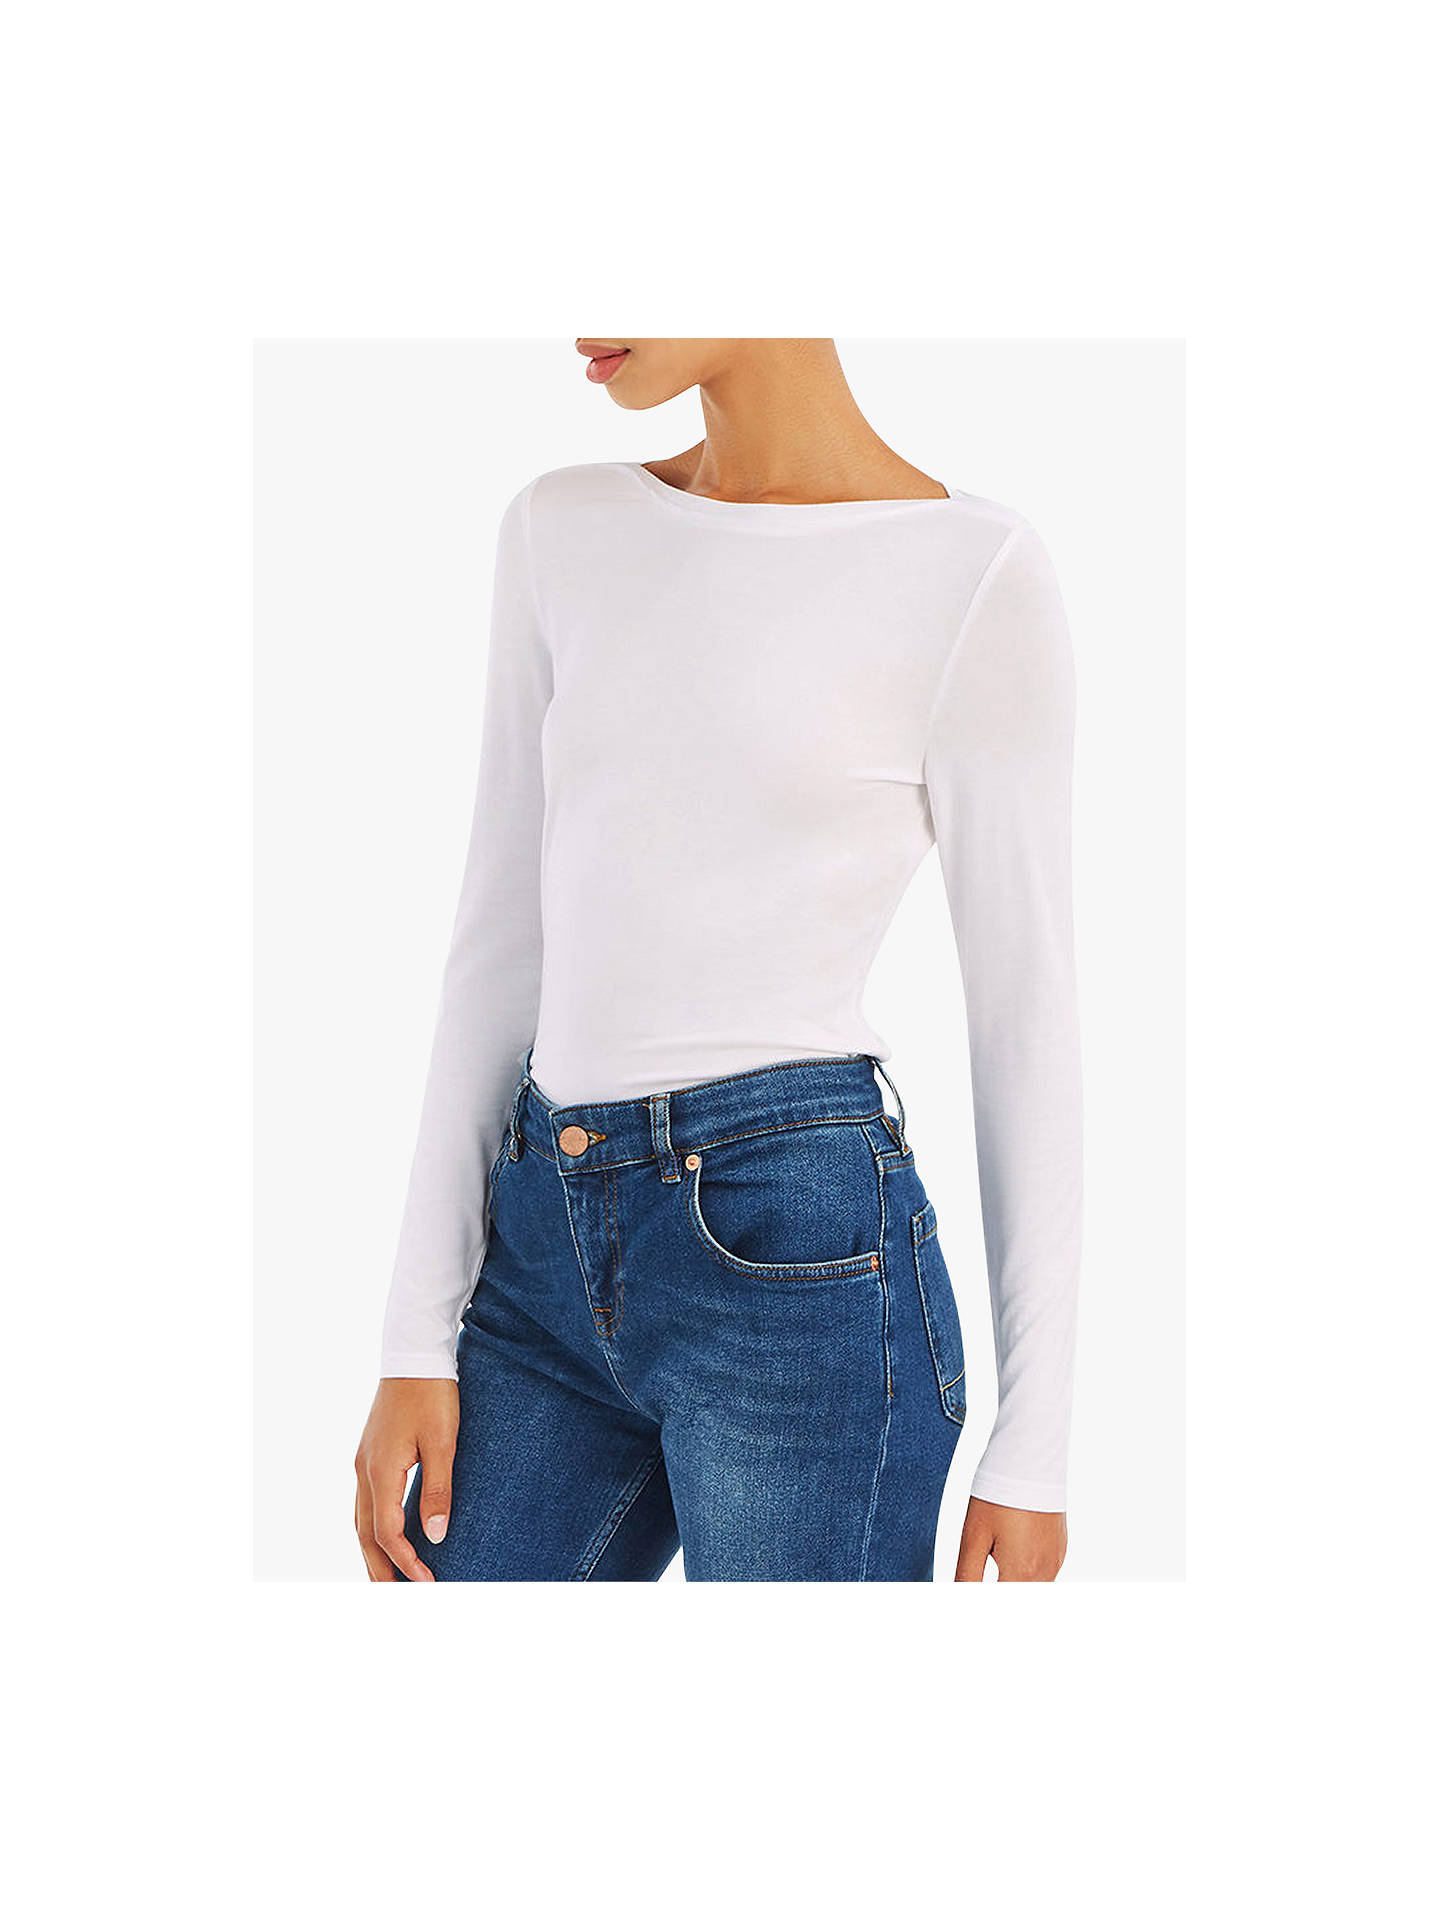 BuyOasis Envelope Neck Top, White, XS Online at johnlewis.com